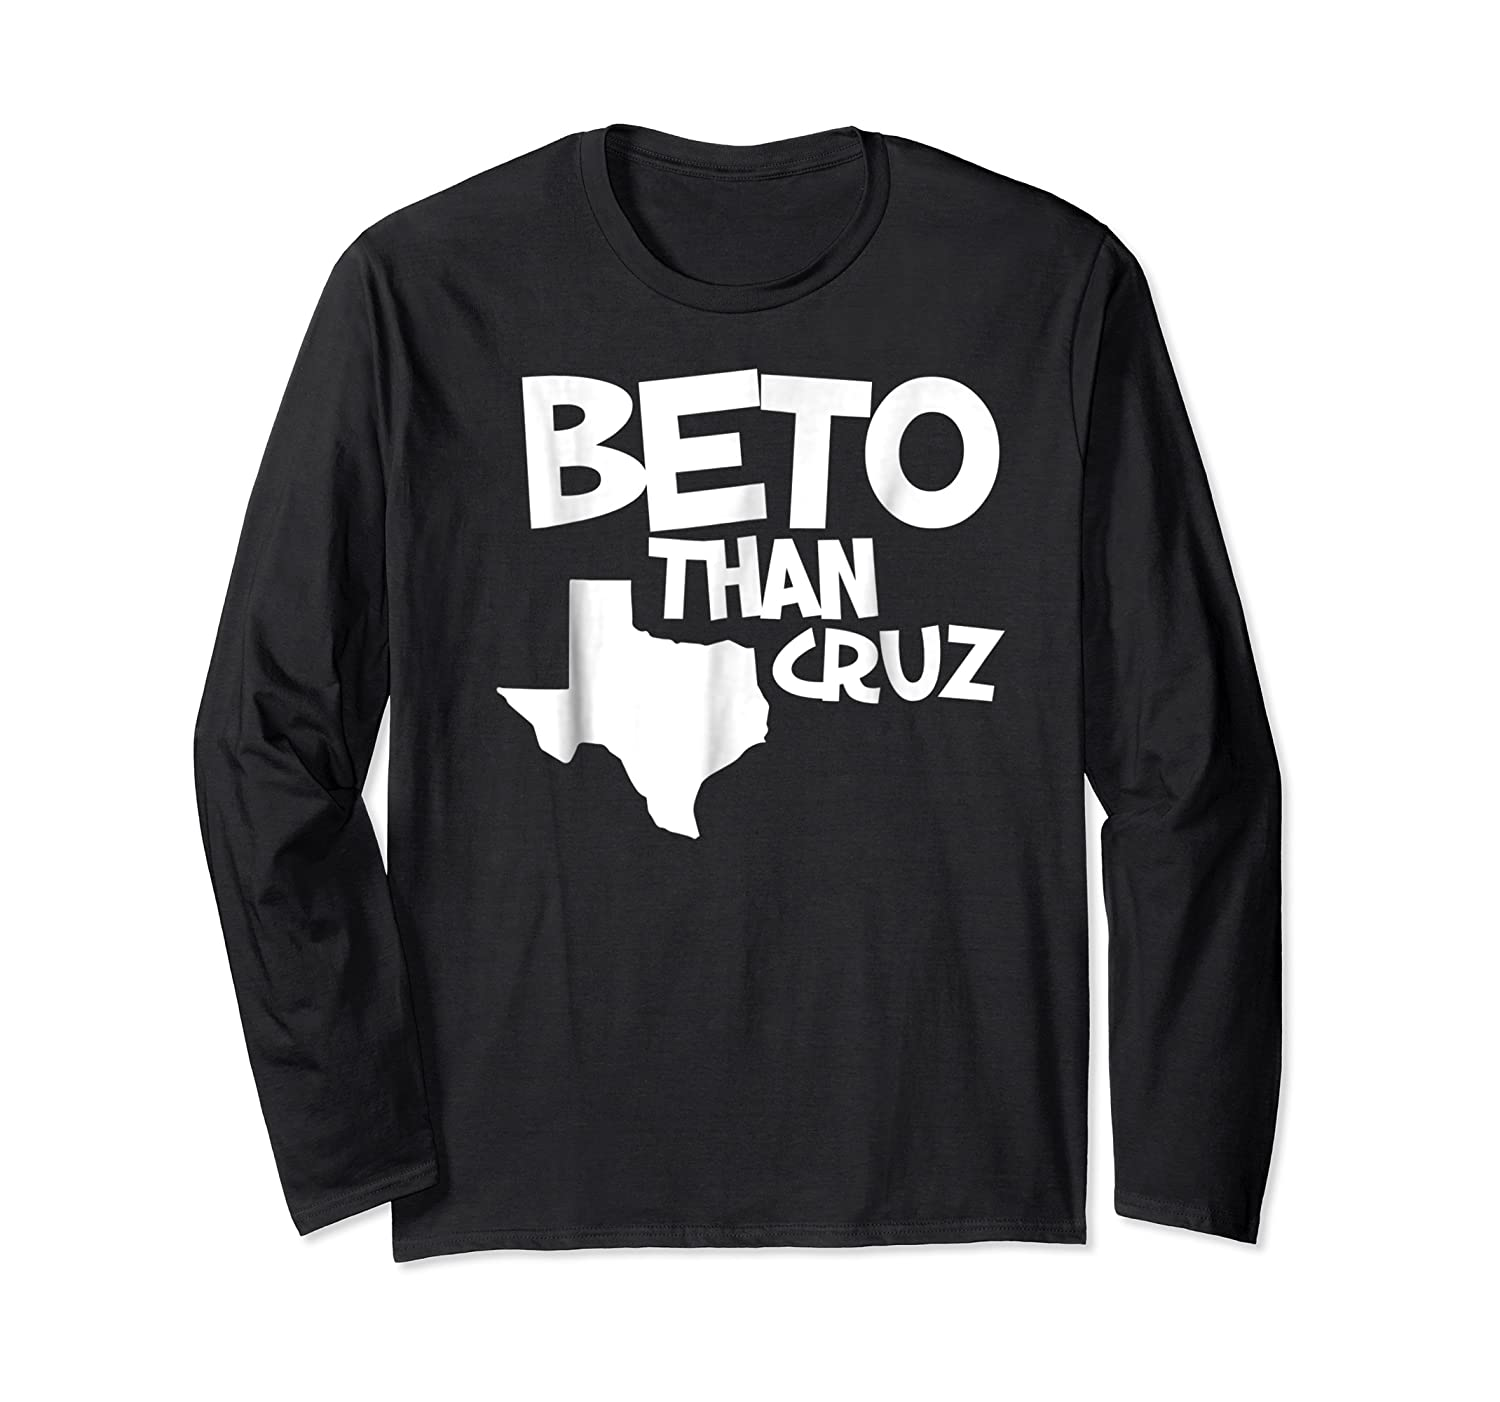 Vote For Beto Loteria Card, Orourke For Texas Senate Shirts Long Sleeve T-shirt